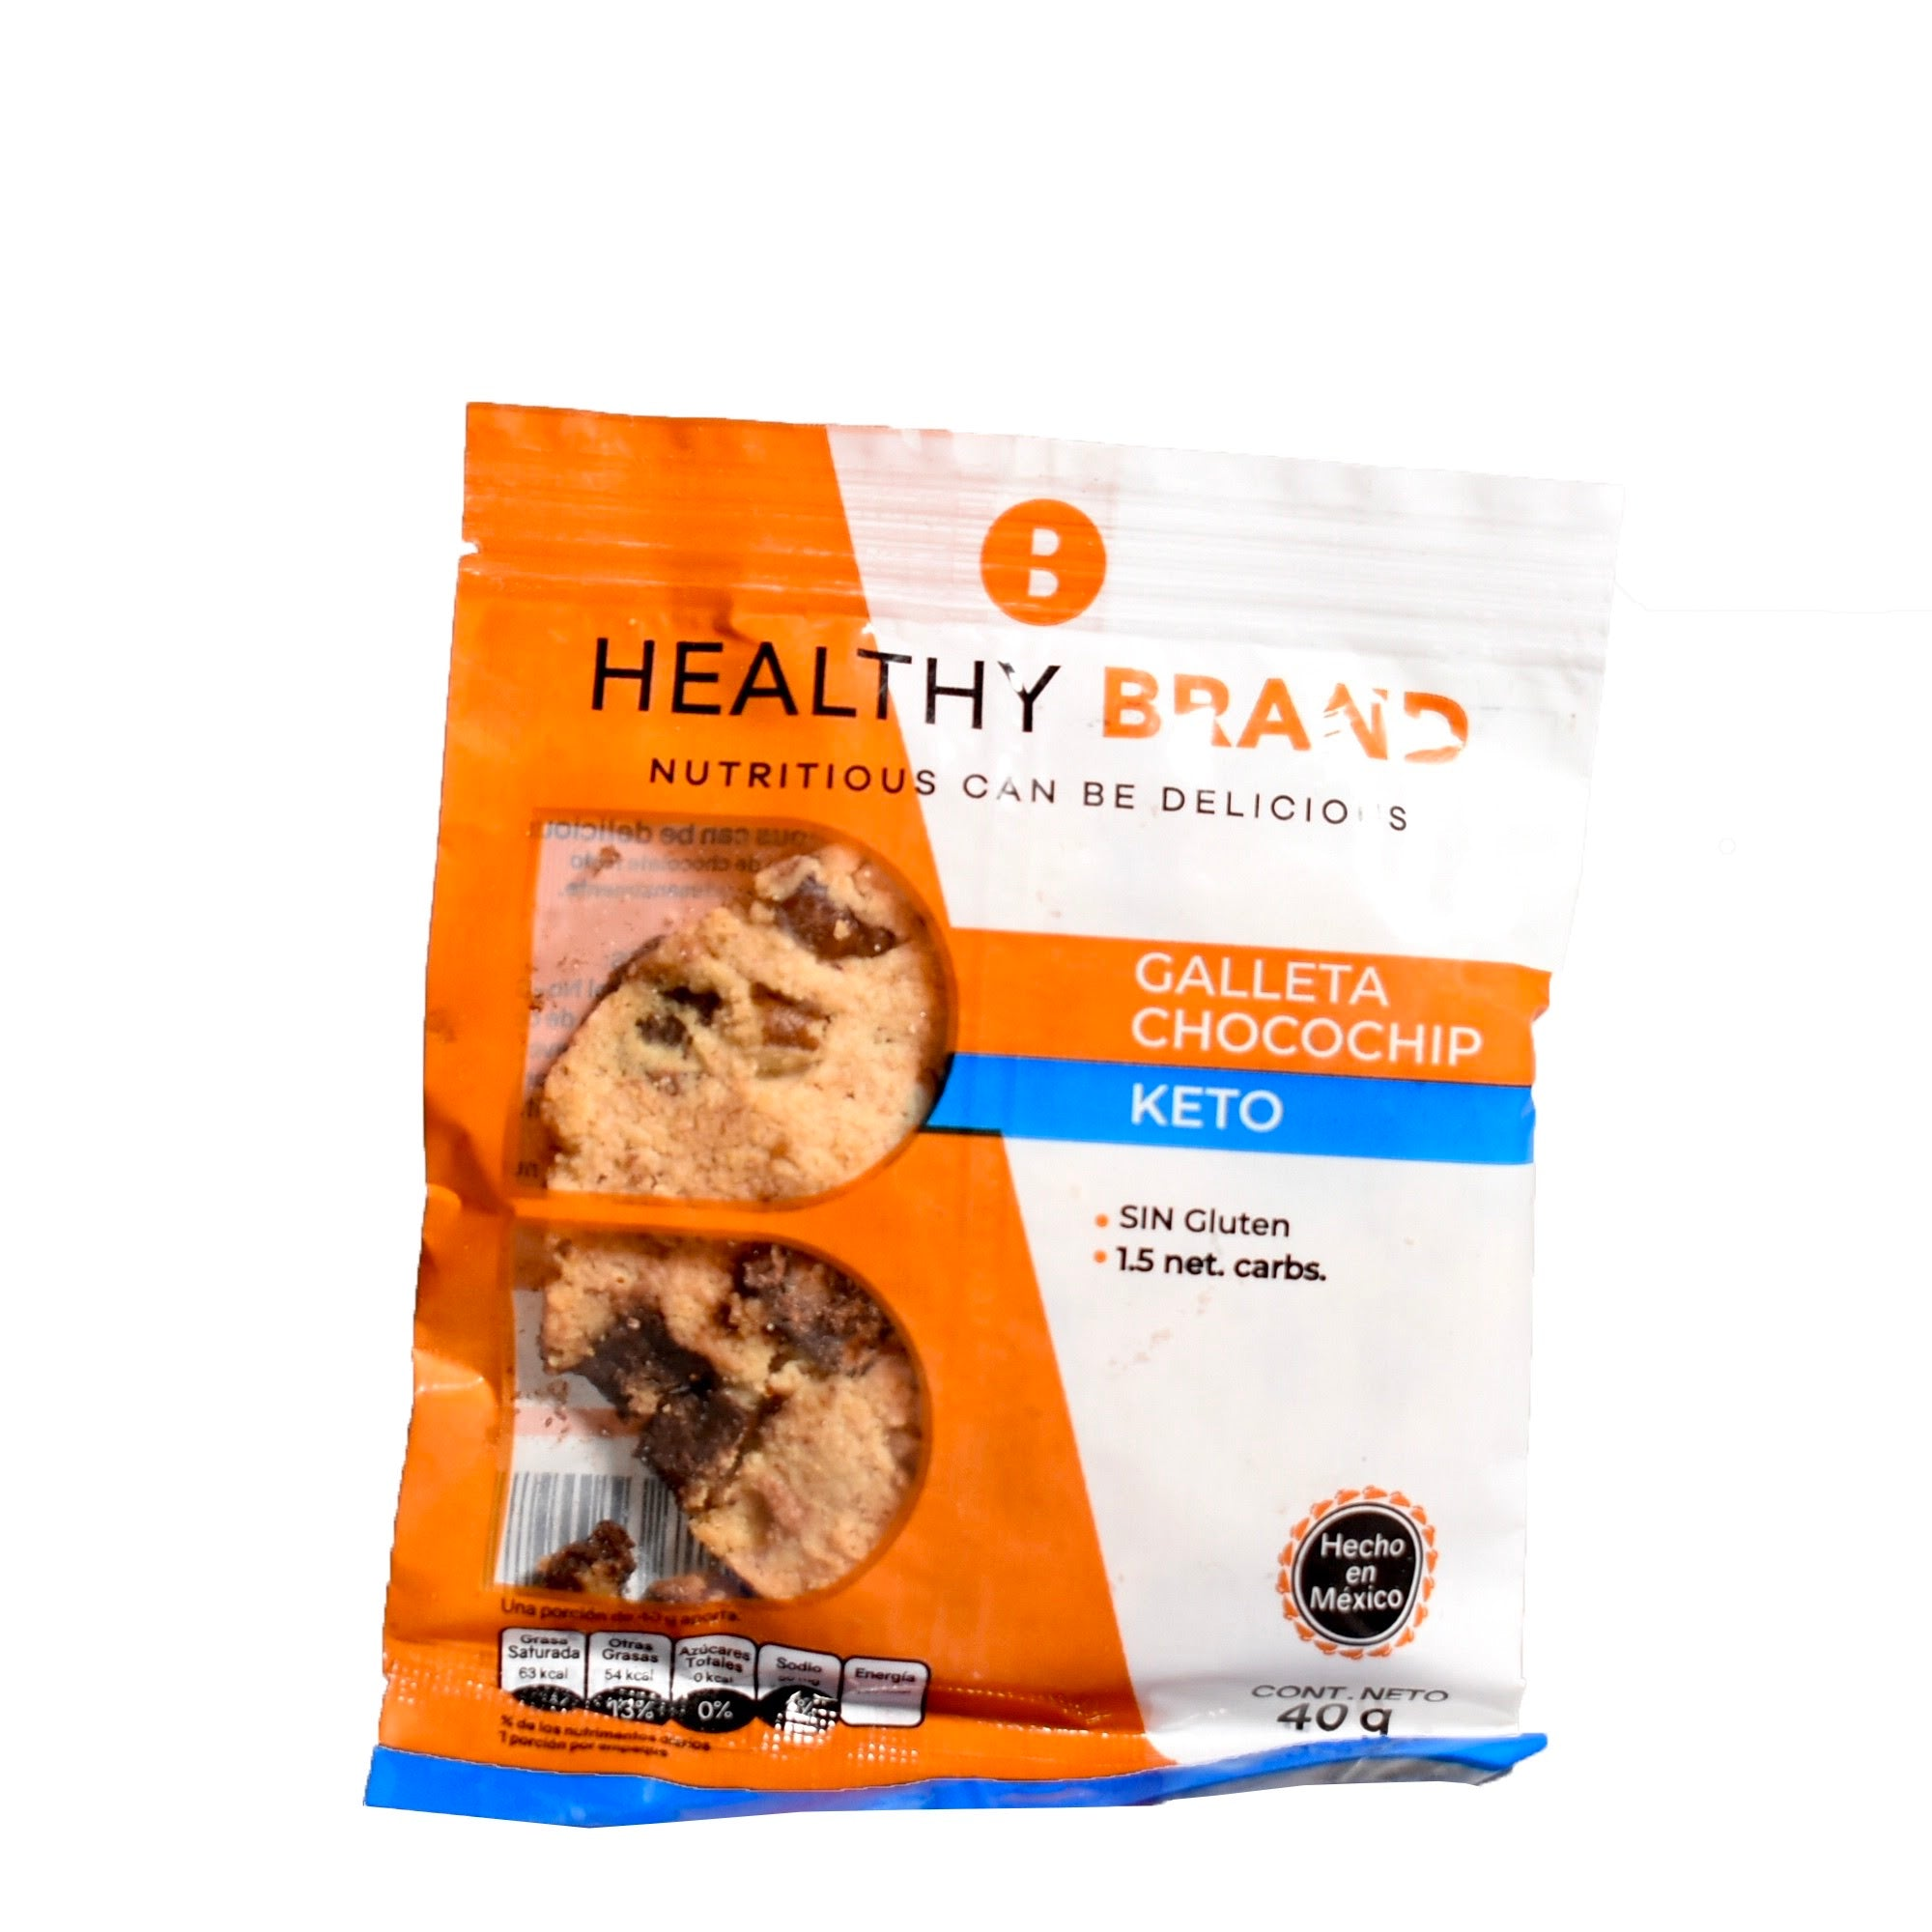 Galleta Chocochip / Healthy Brand